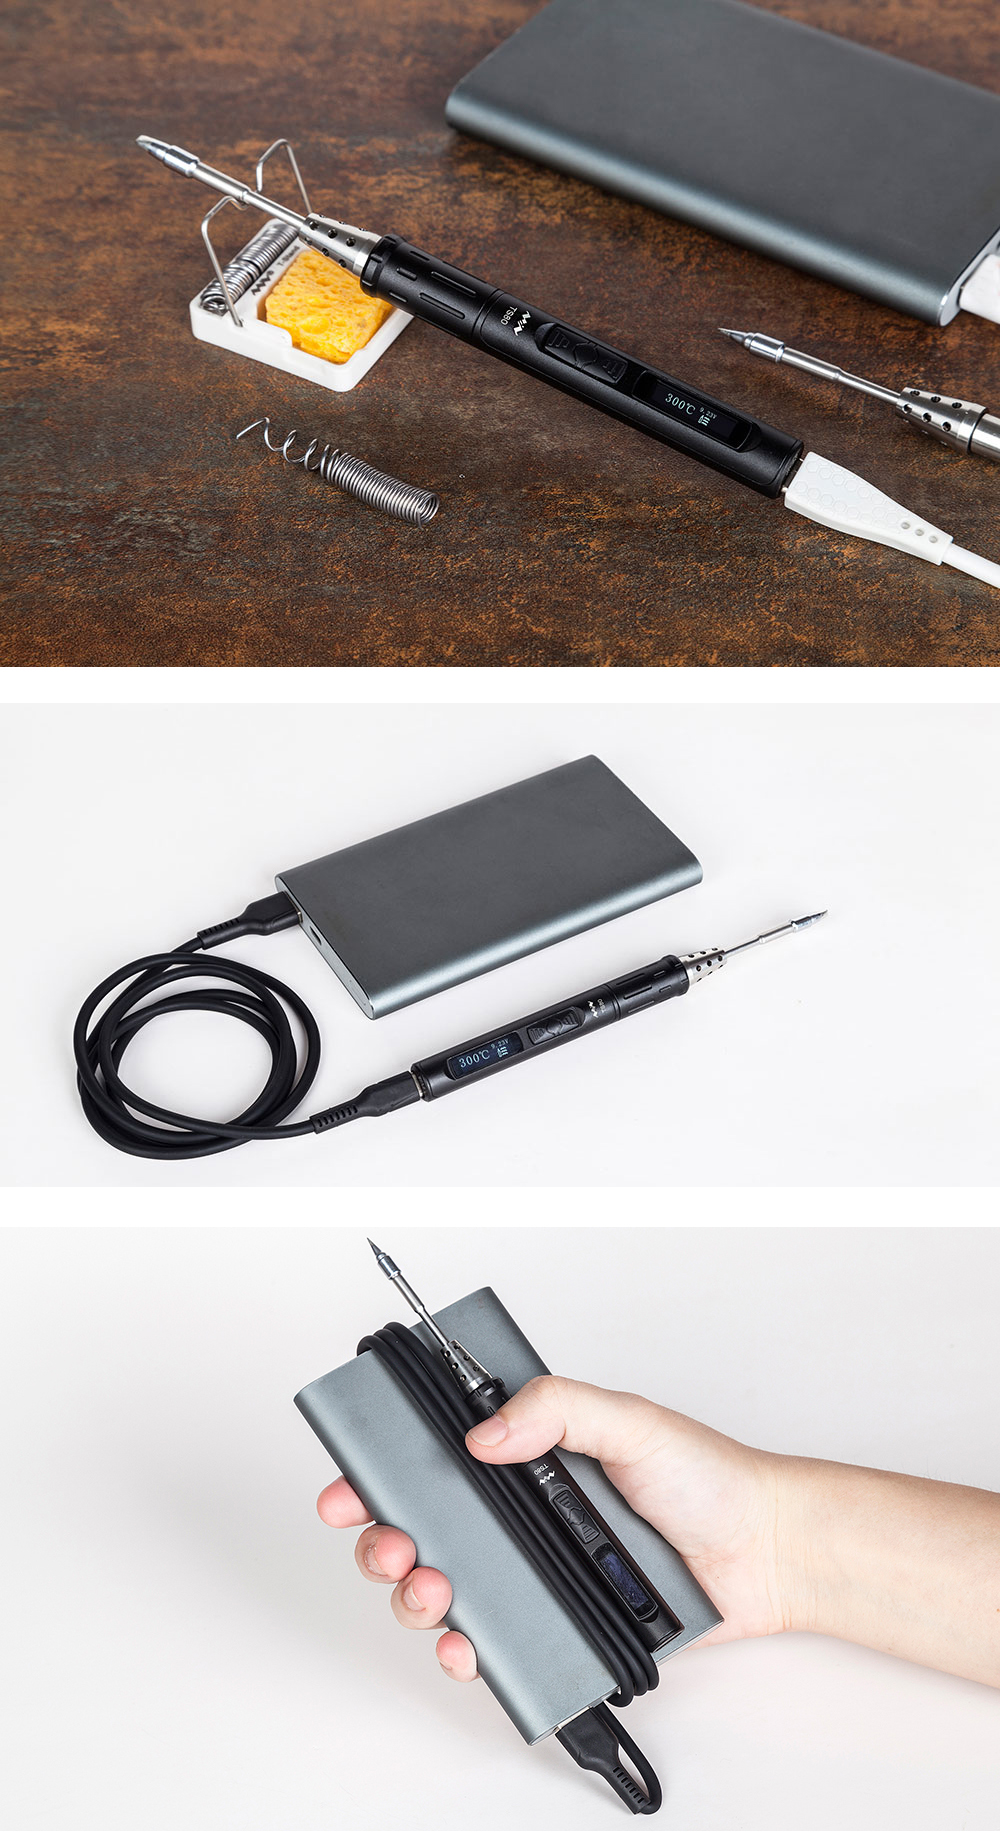 MINI TS80 Digital OLED USB Type-C Programable Soldering Iron Station Solder Tool Built-in STM32 Chip